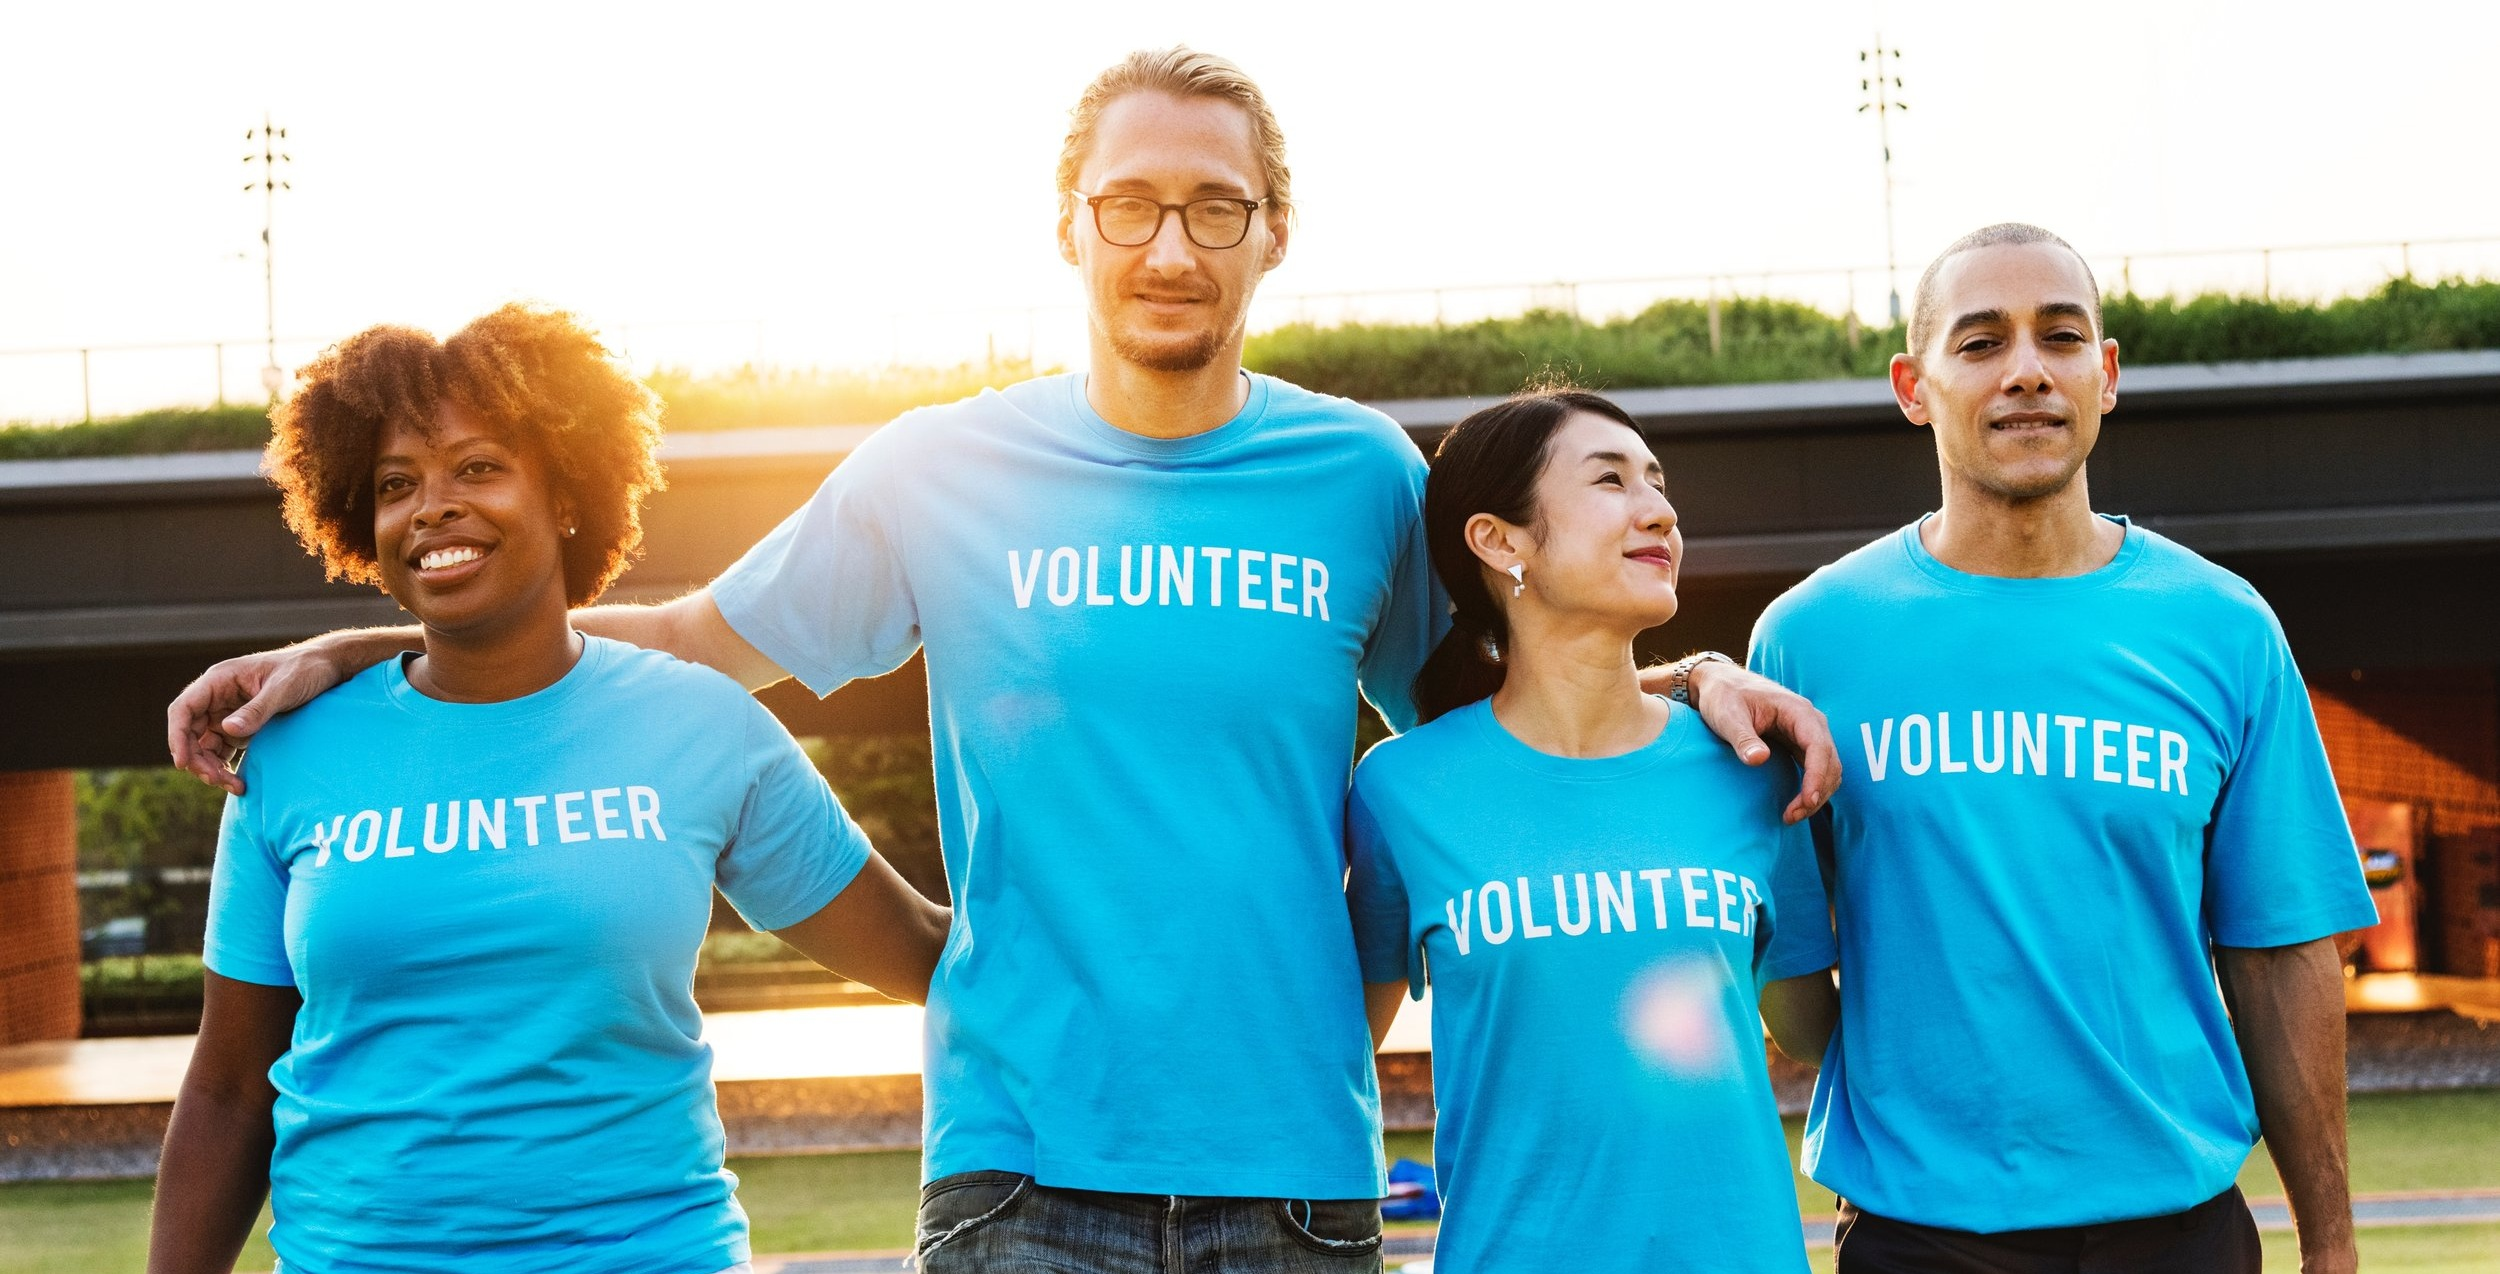 Not all self-care is about the self. One of the most fulfilling things we can do is volunteer with a local non-profit to improve the lives of those less fortunate. Courtesy photo.